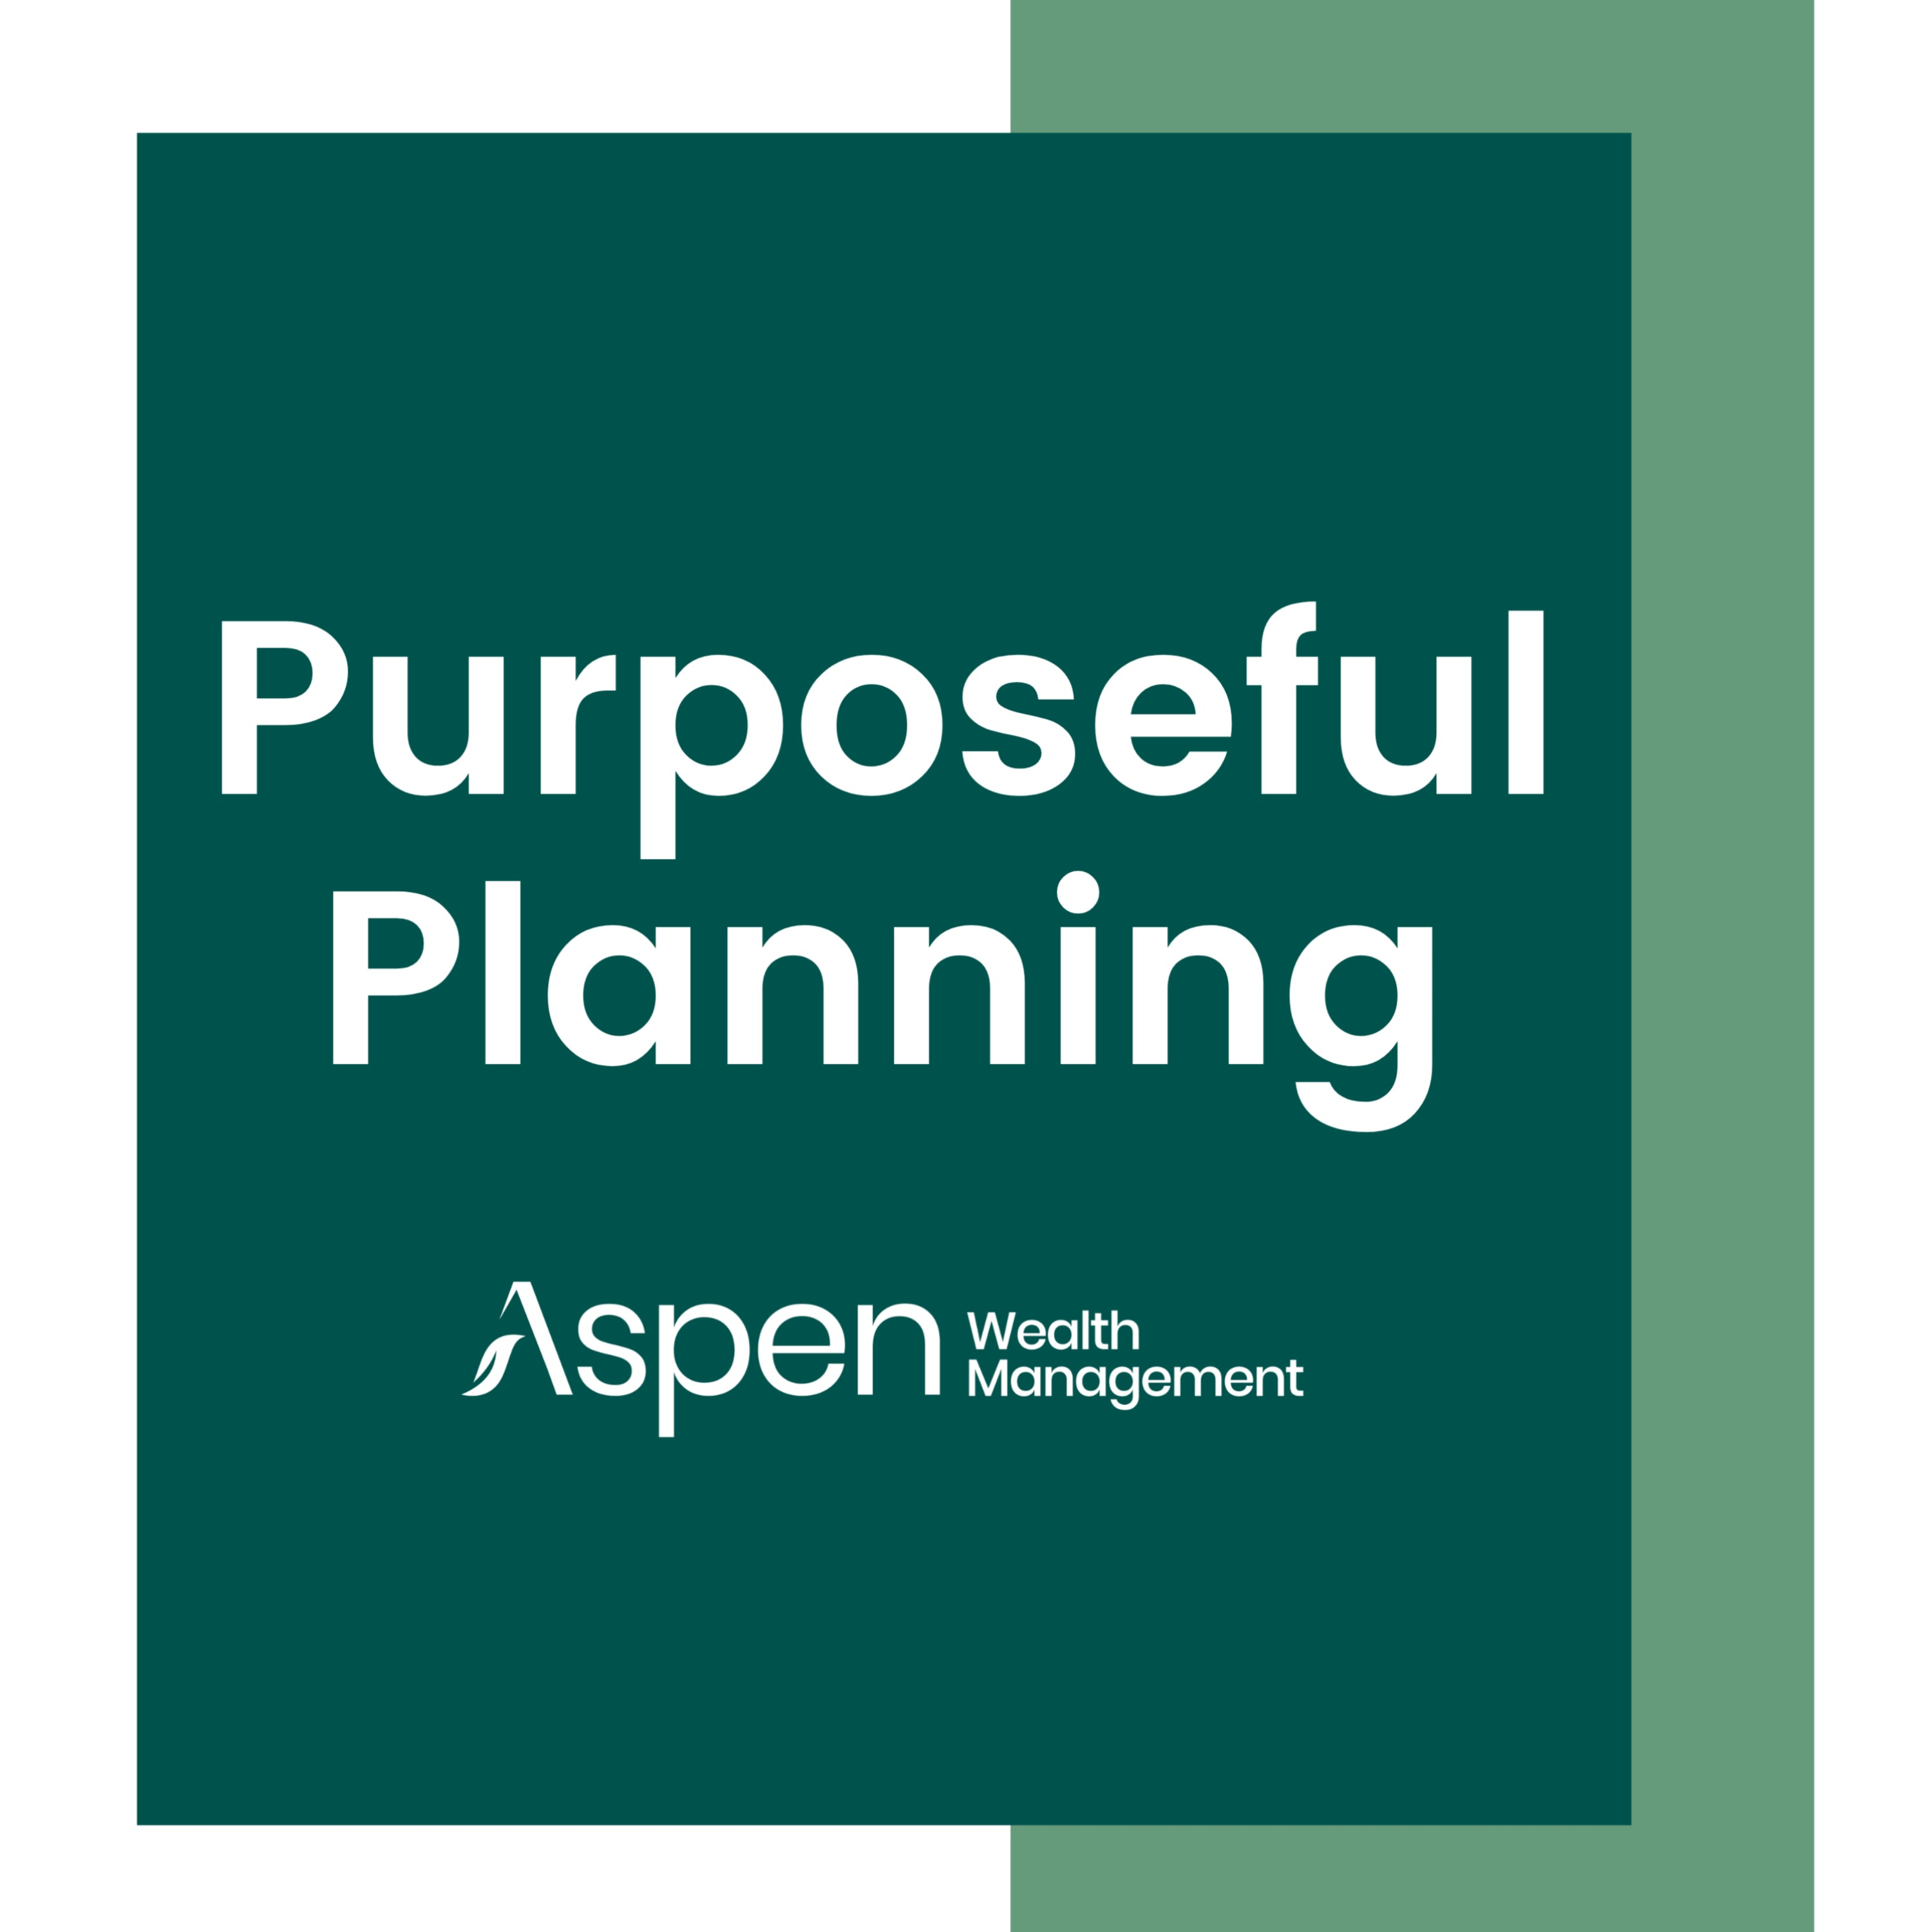 Purposeful Planning with Aspen Wealth Management podcast show image